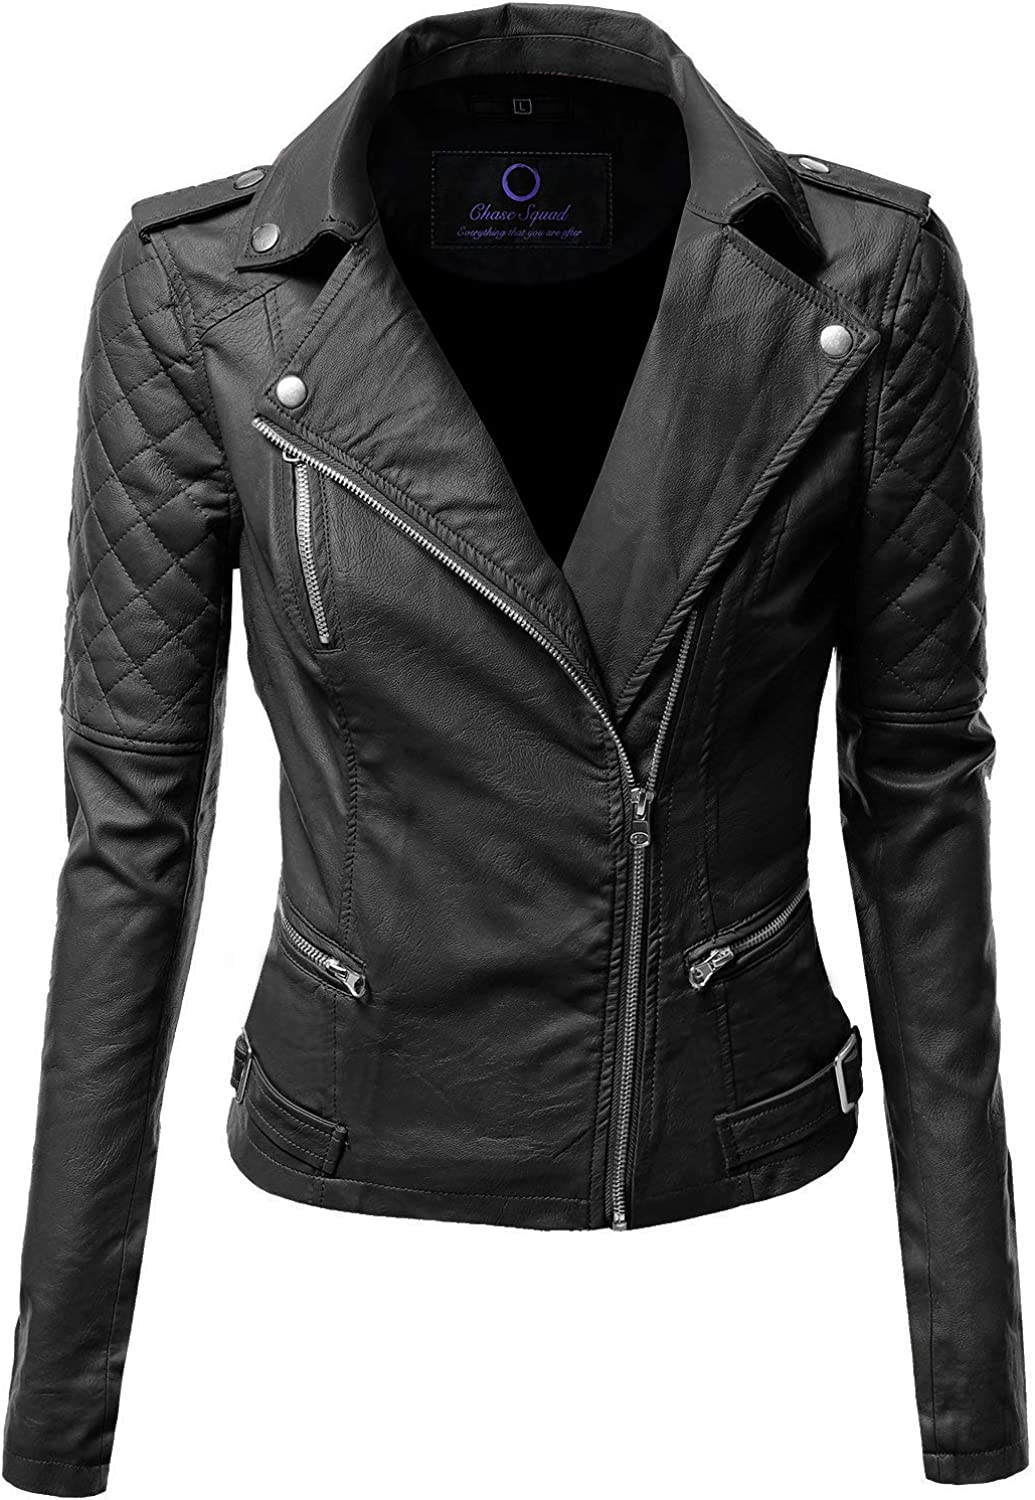 Chase Squad Lambskin Leather Jackets for Women  Quilted Biker Leather Jacket in Black